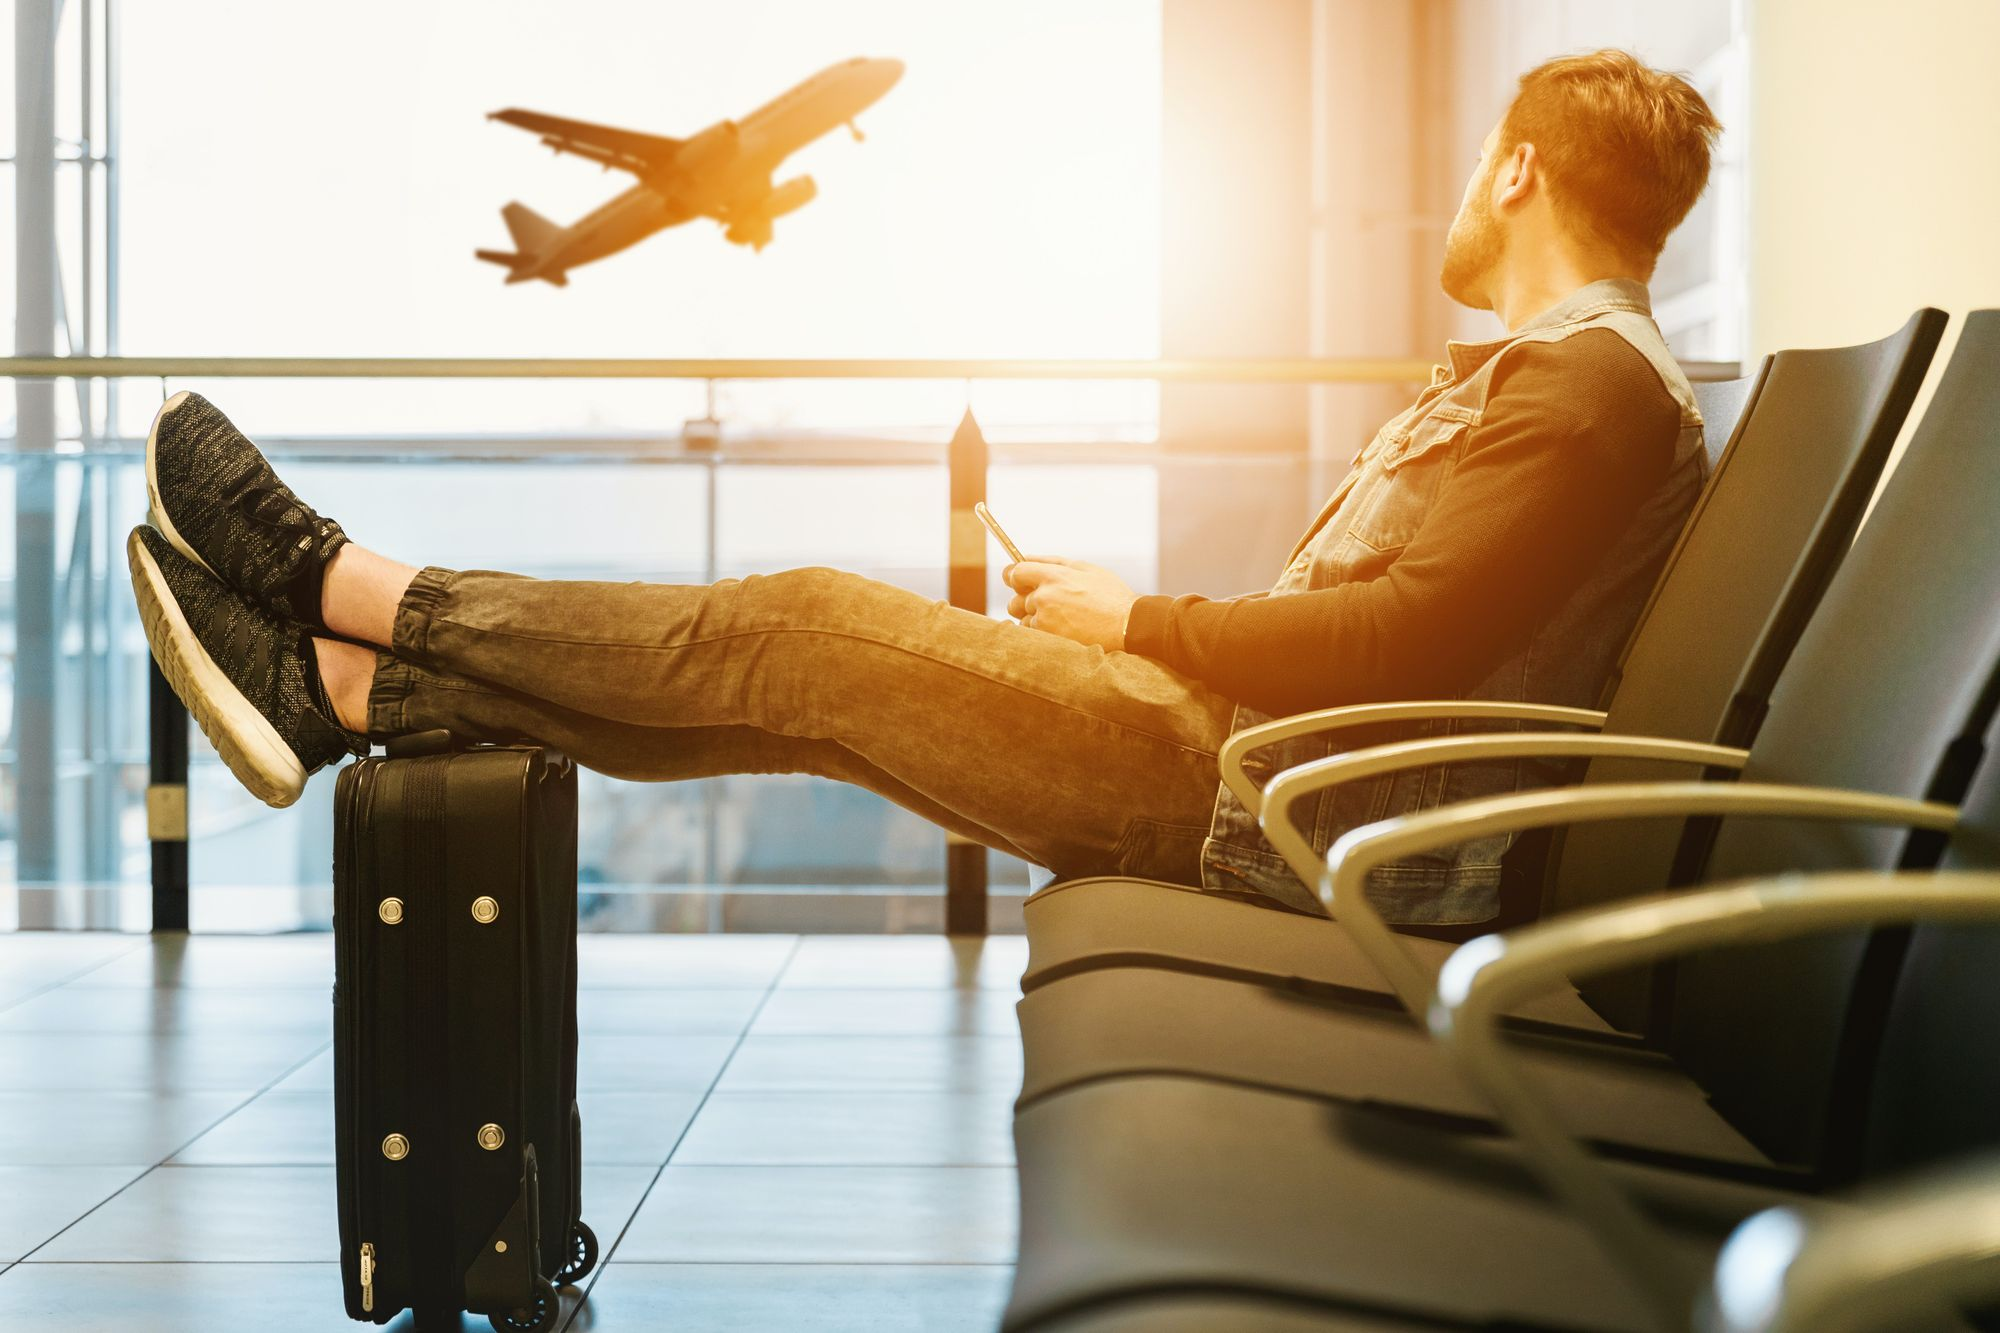 A guy waiting for his plane to go in his next holidays